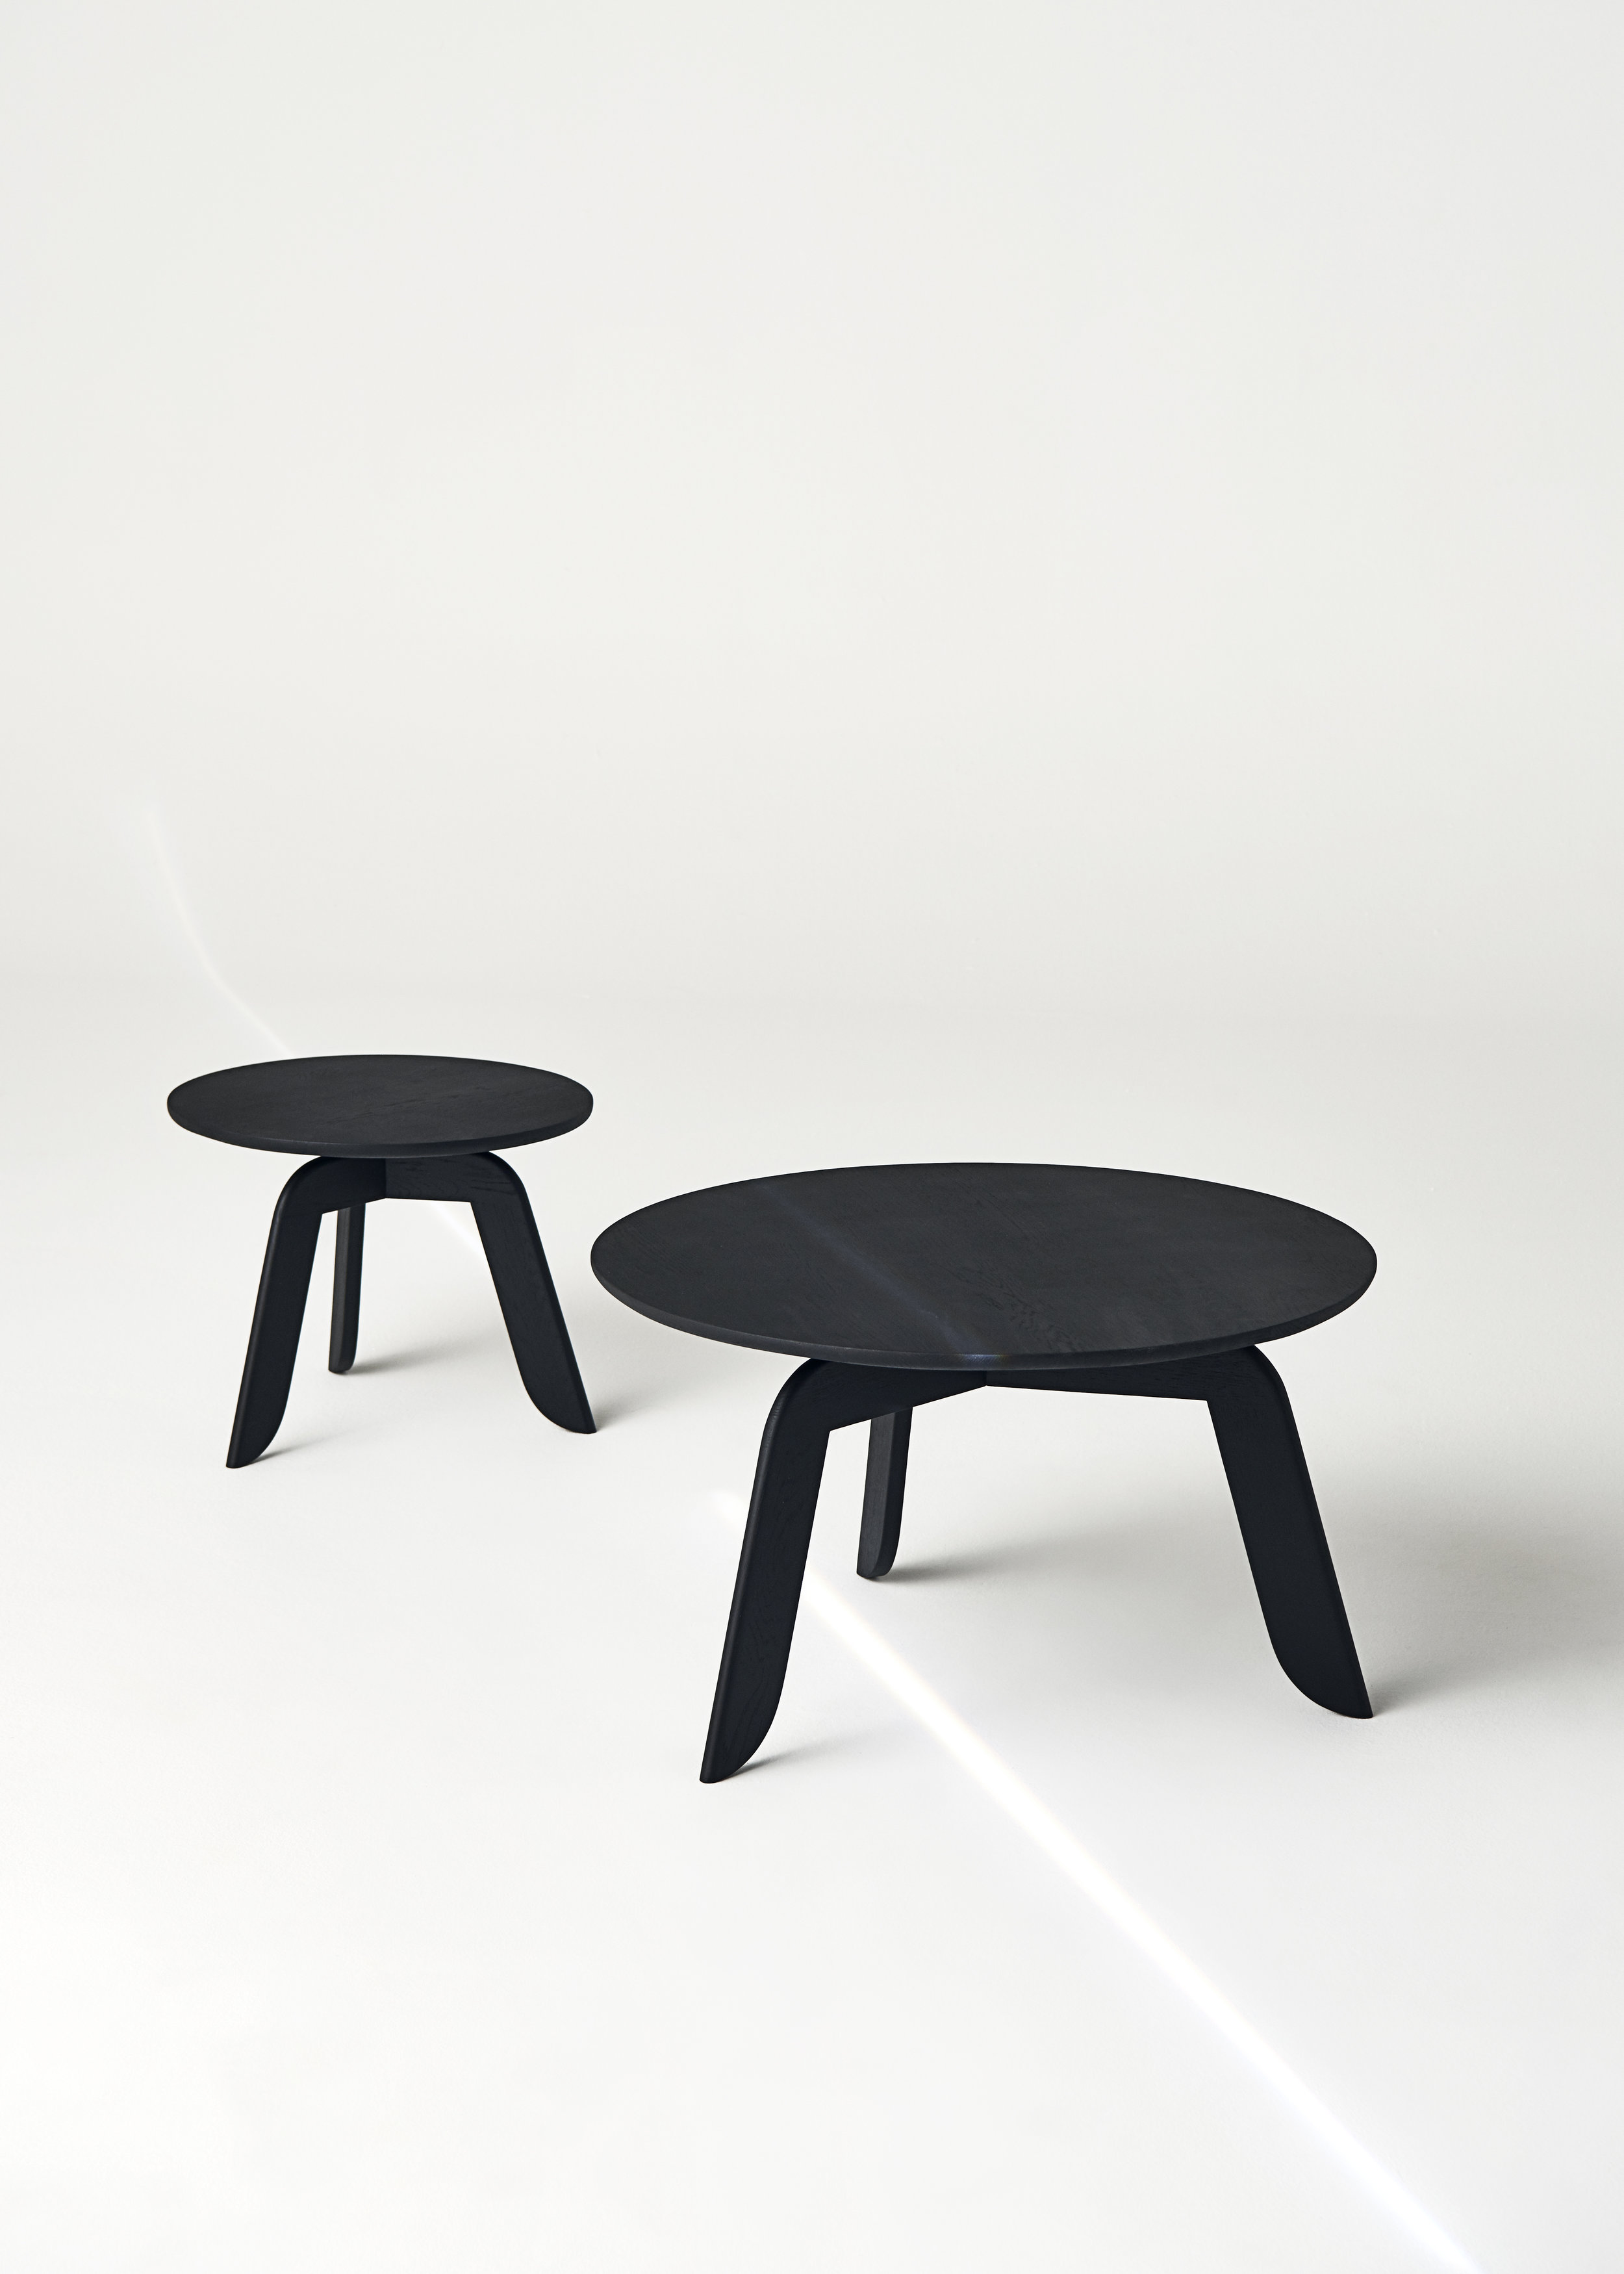 type - coffee tables